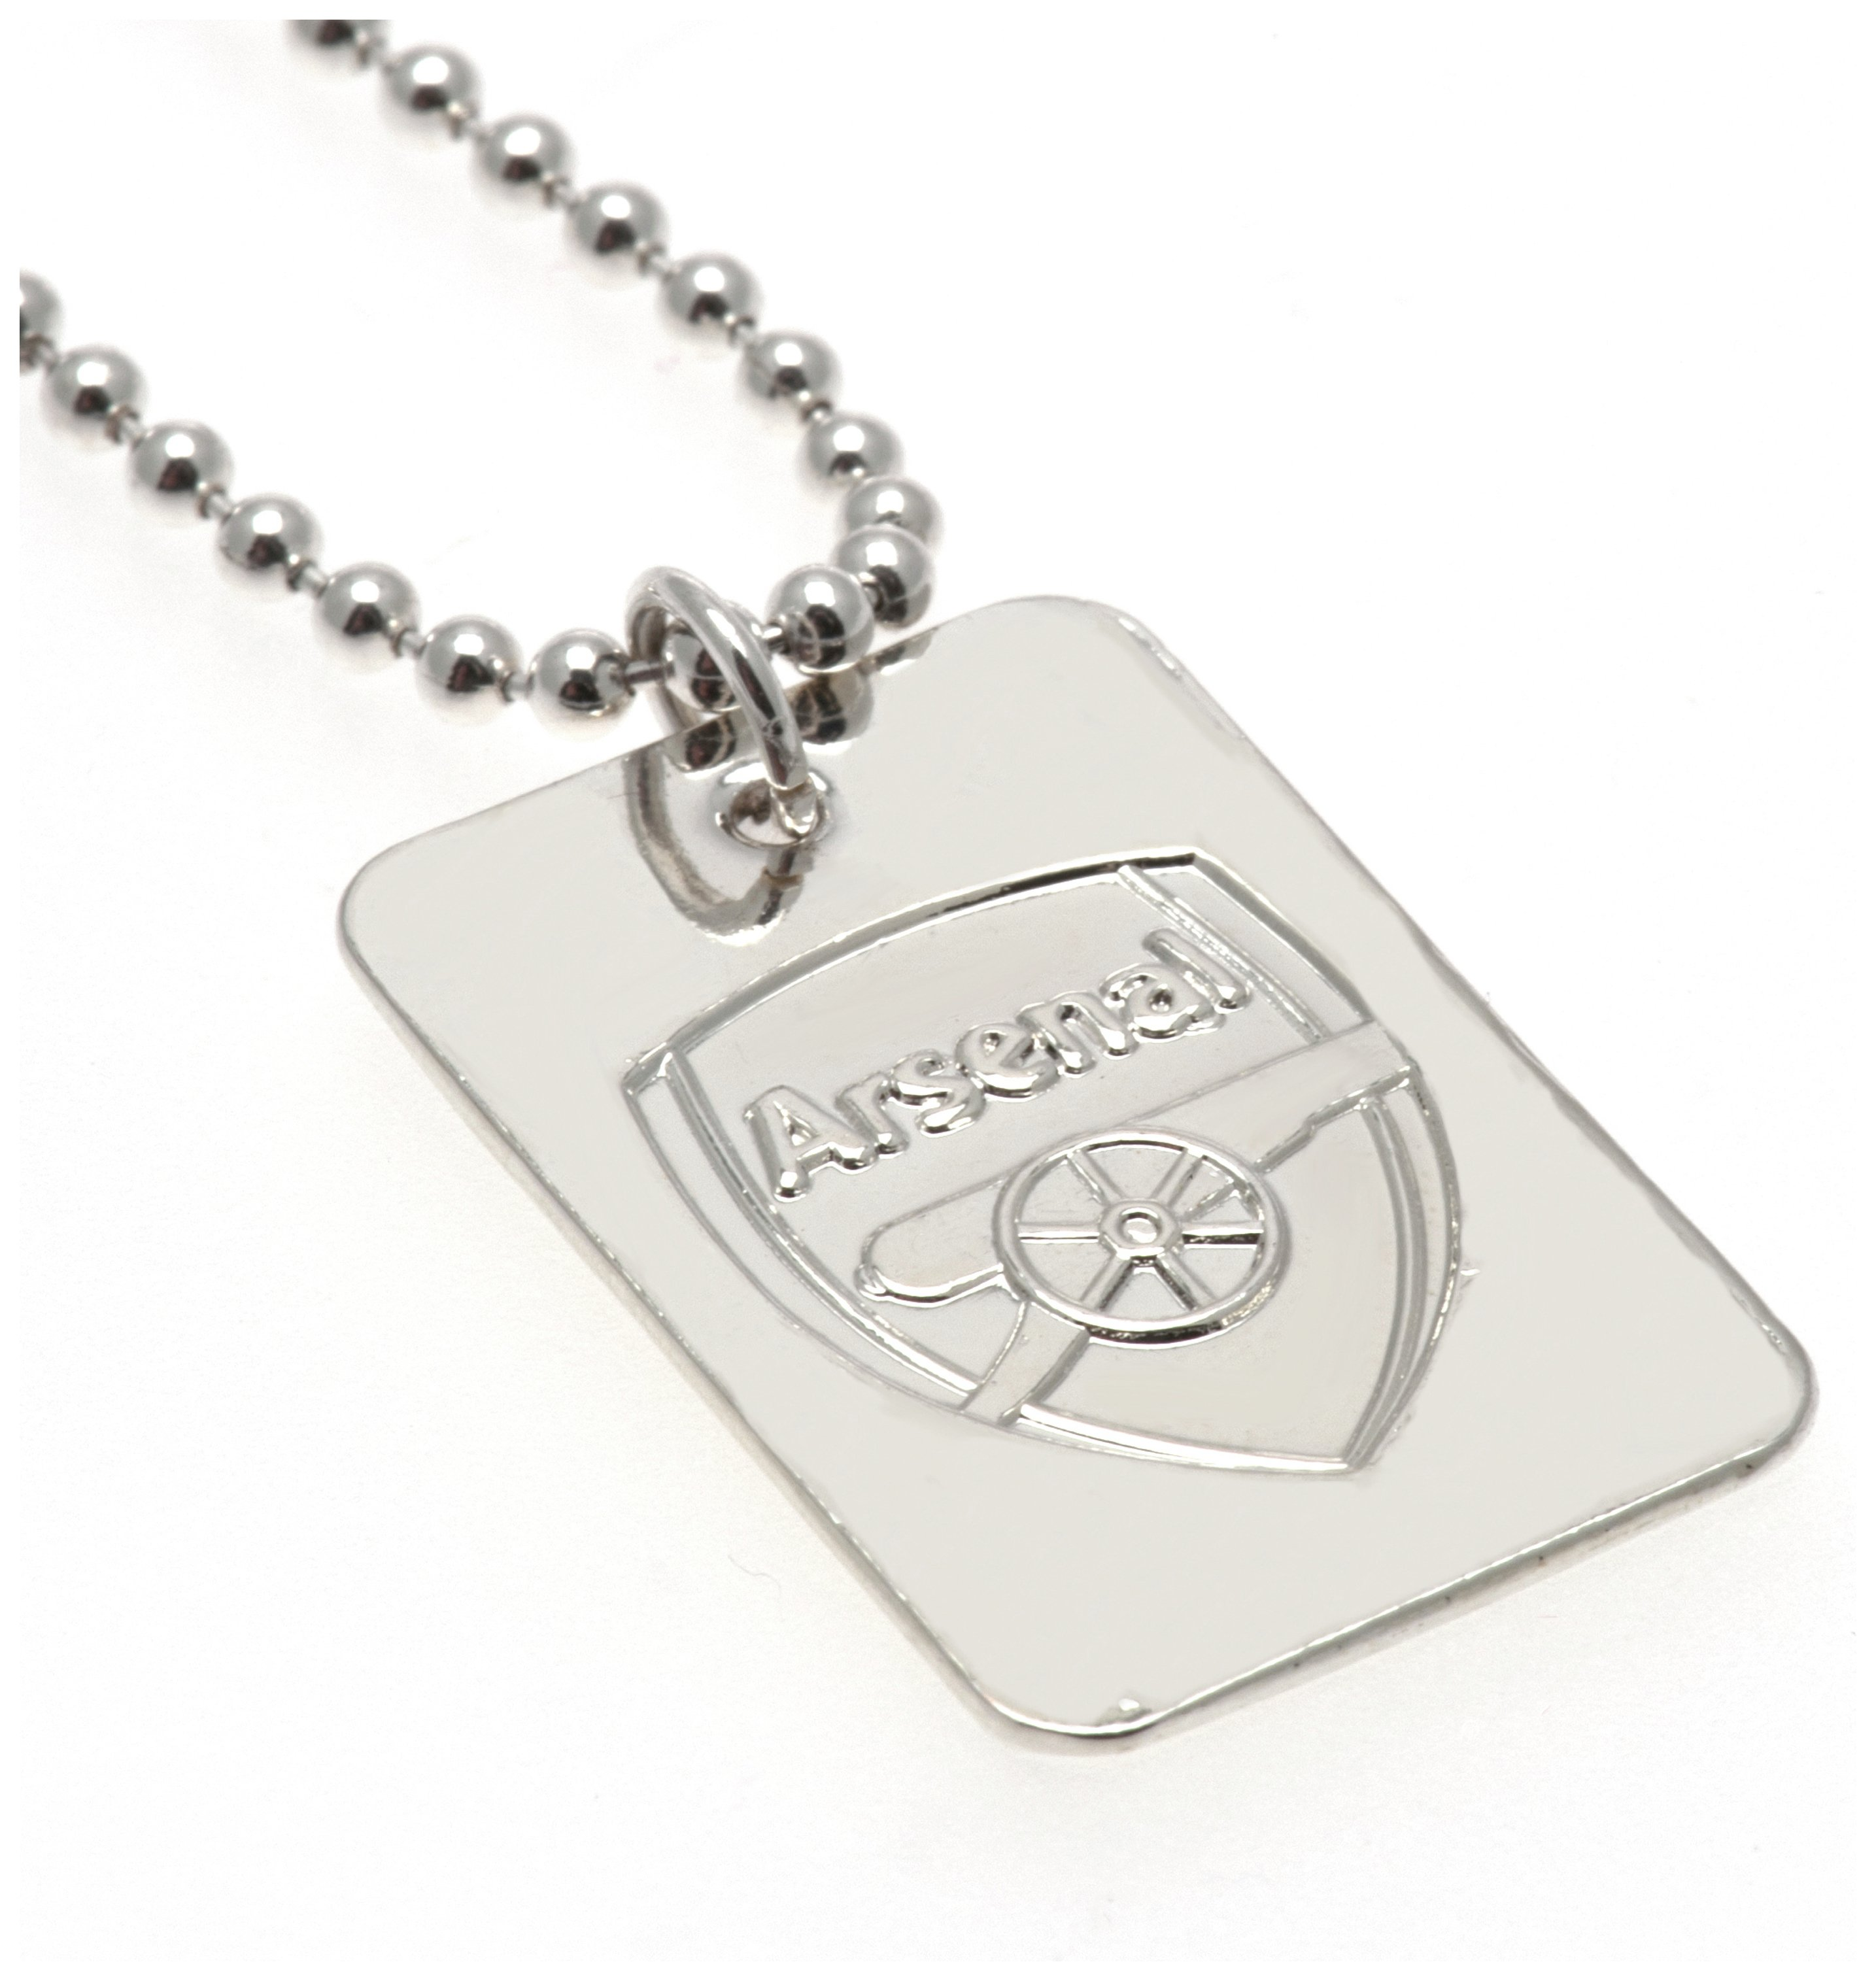 Image of Silver Plated Arsenal Dog Tag & Ball Chain.